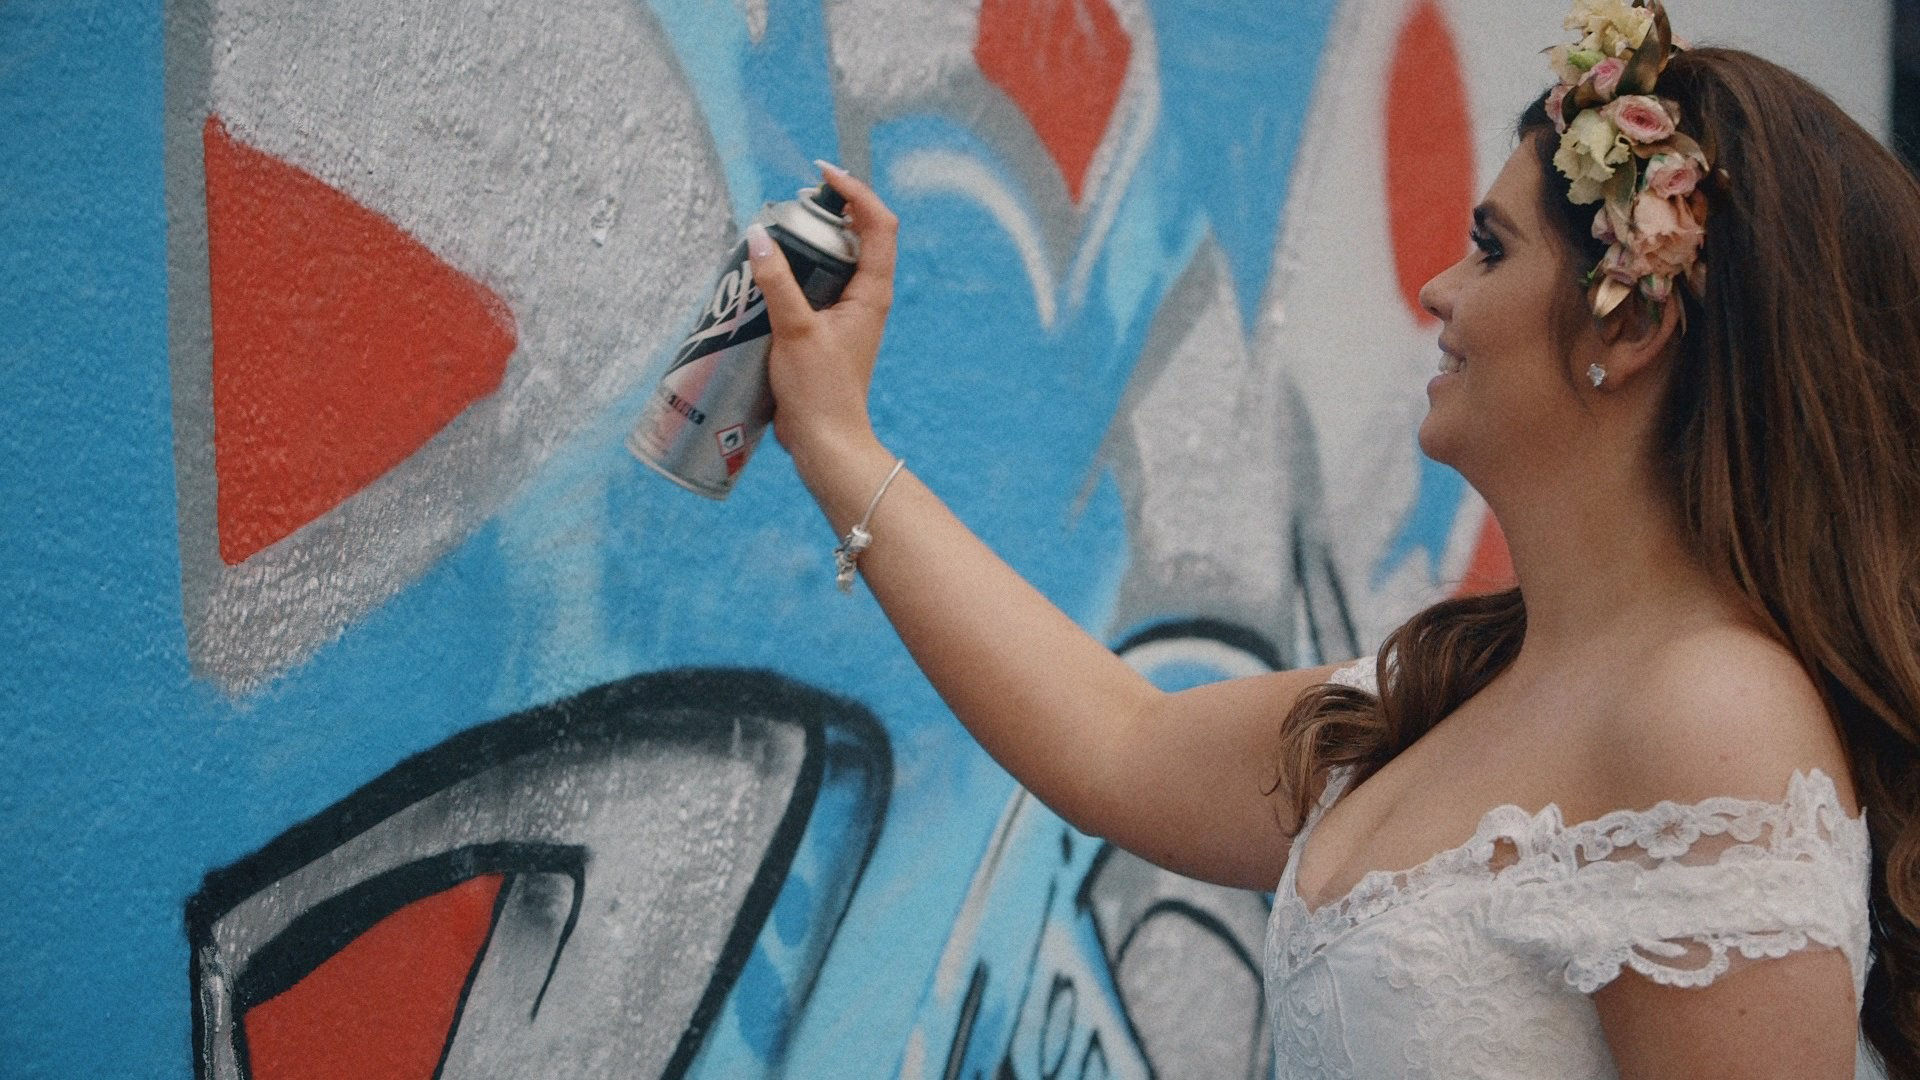 Bride spray painting on a wall in her wedding dress